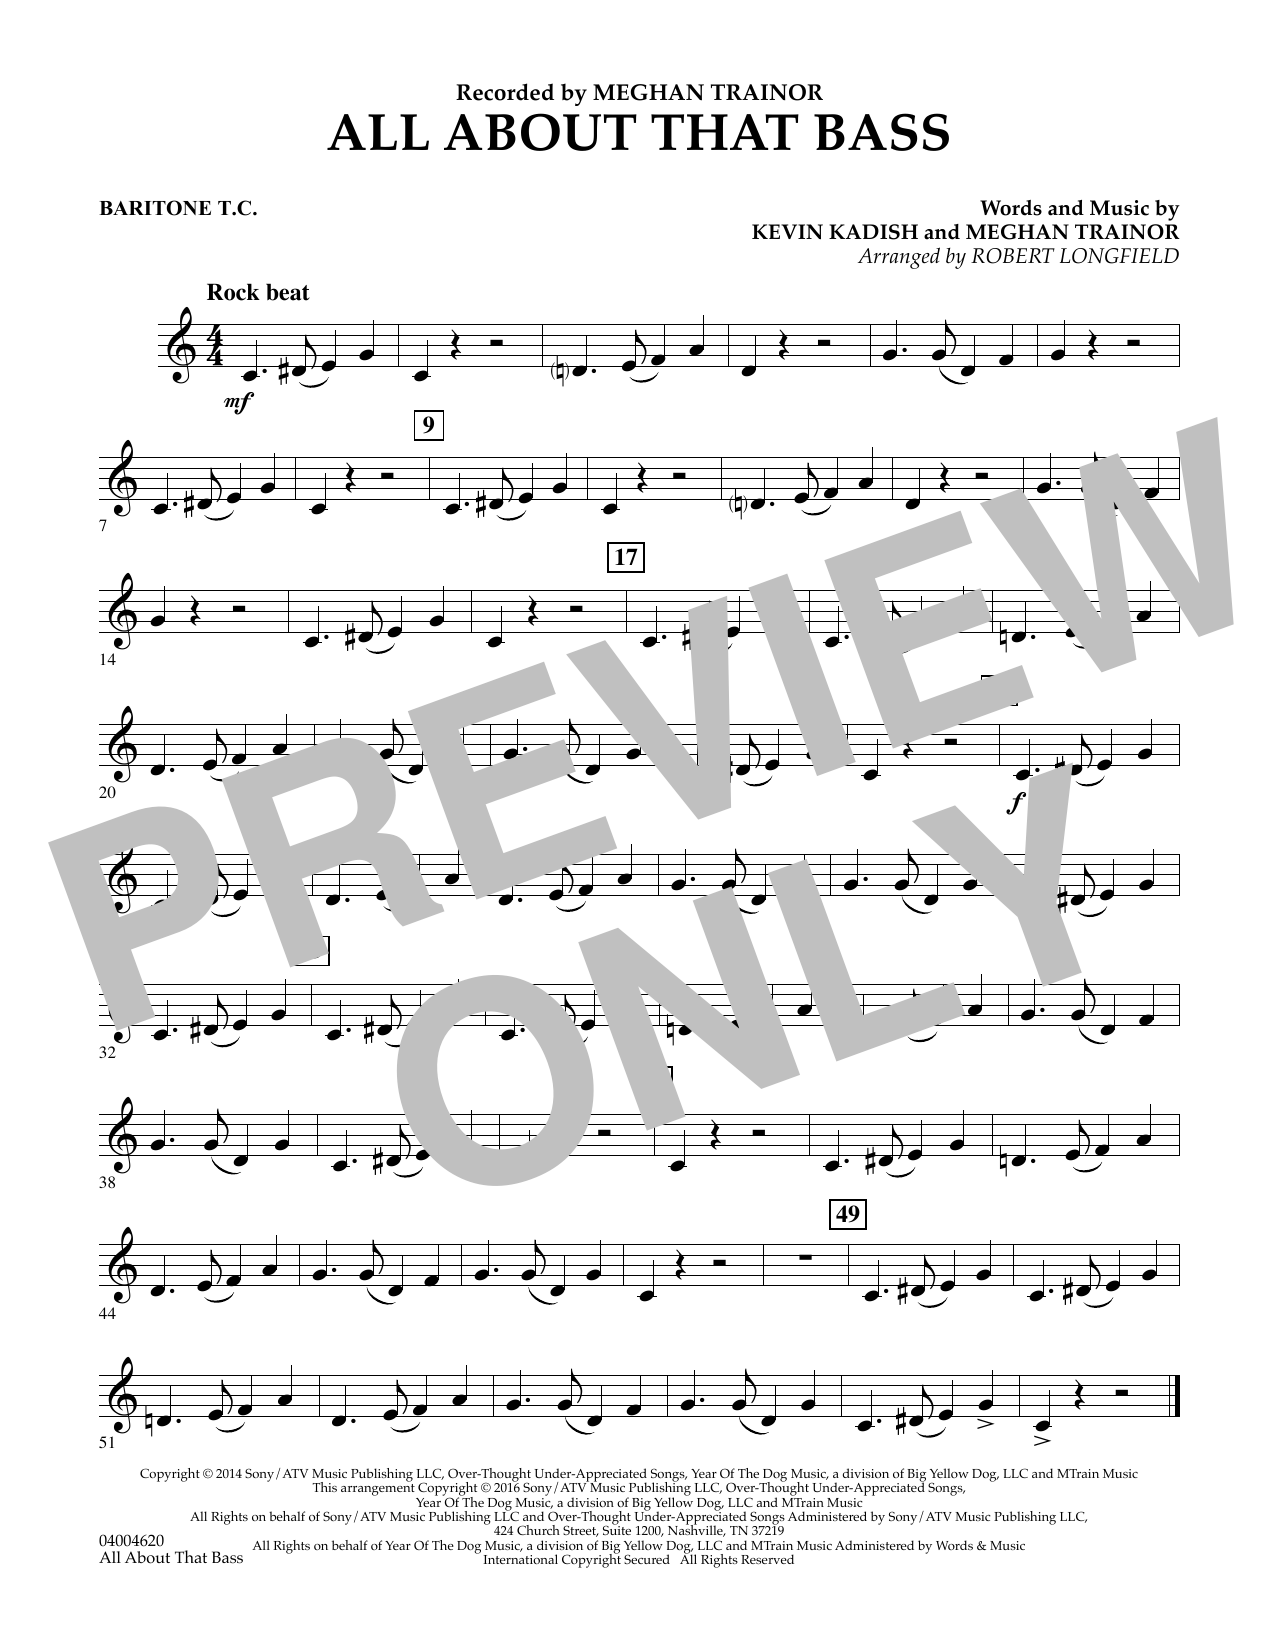 Robert Longfield All About That Bass - Baritone T.C. sheet music notes and chords. Download Printable PDF.